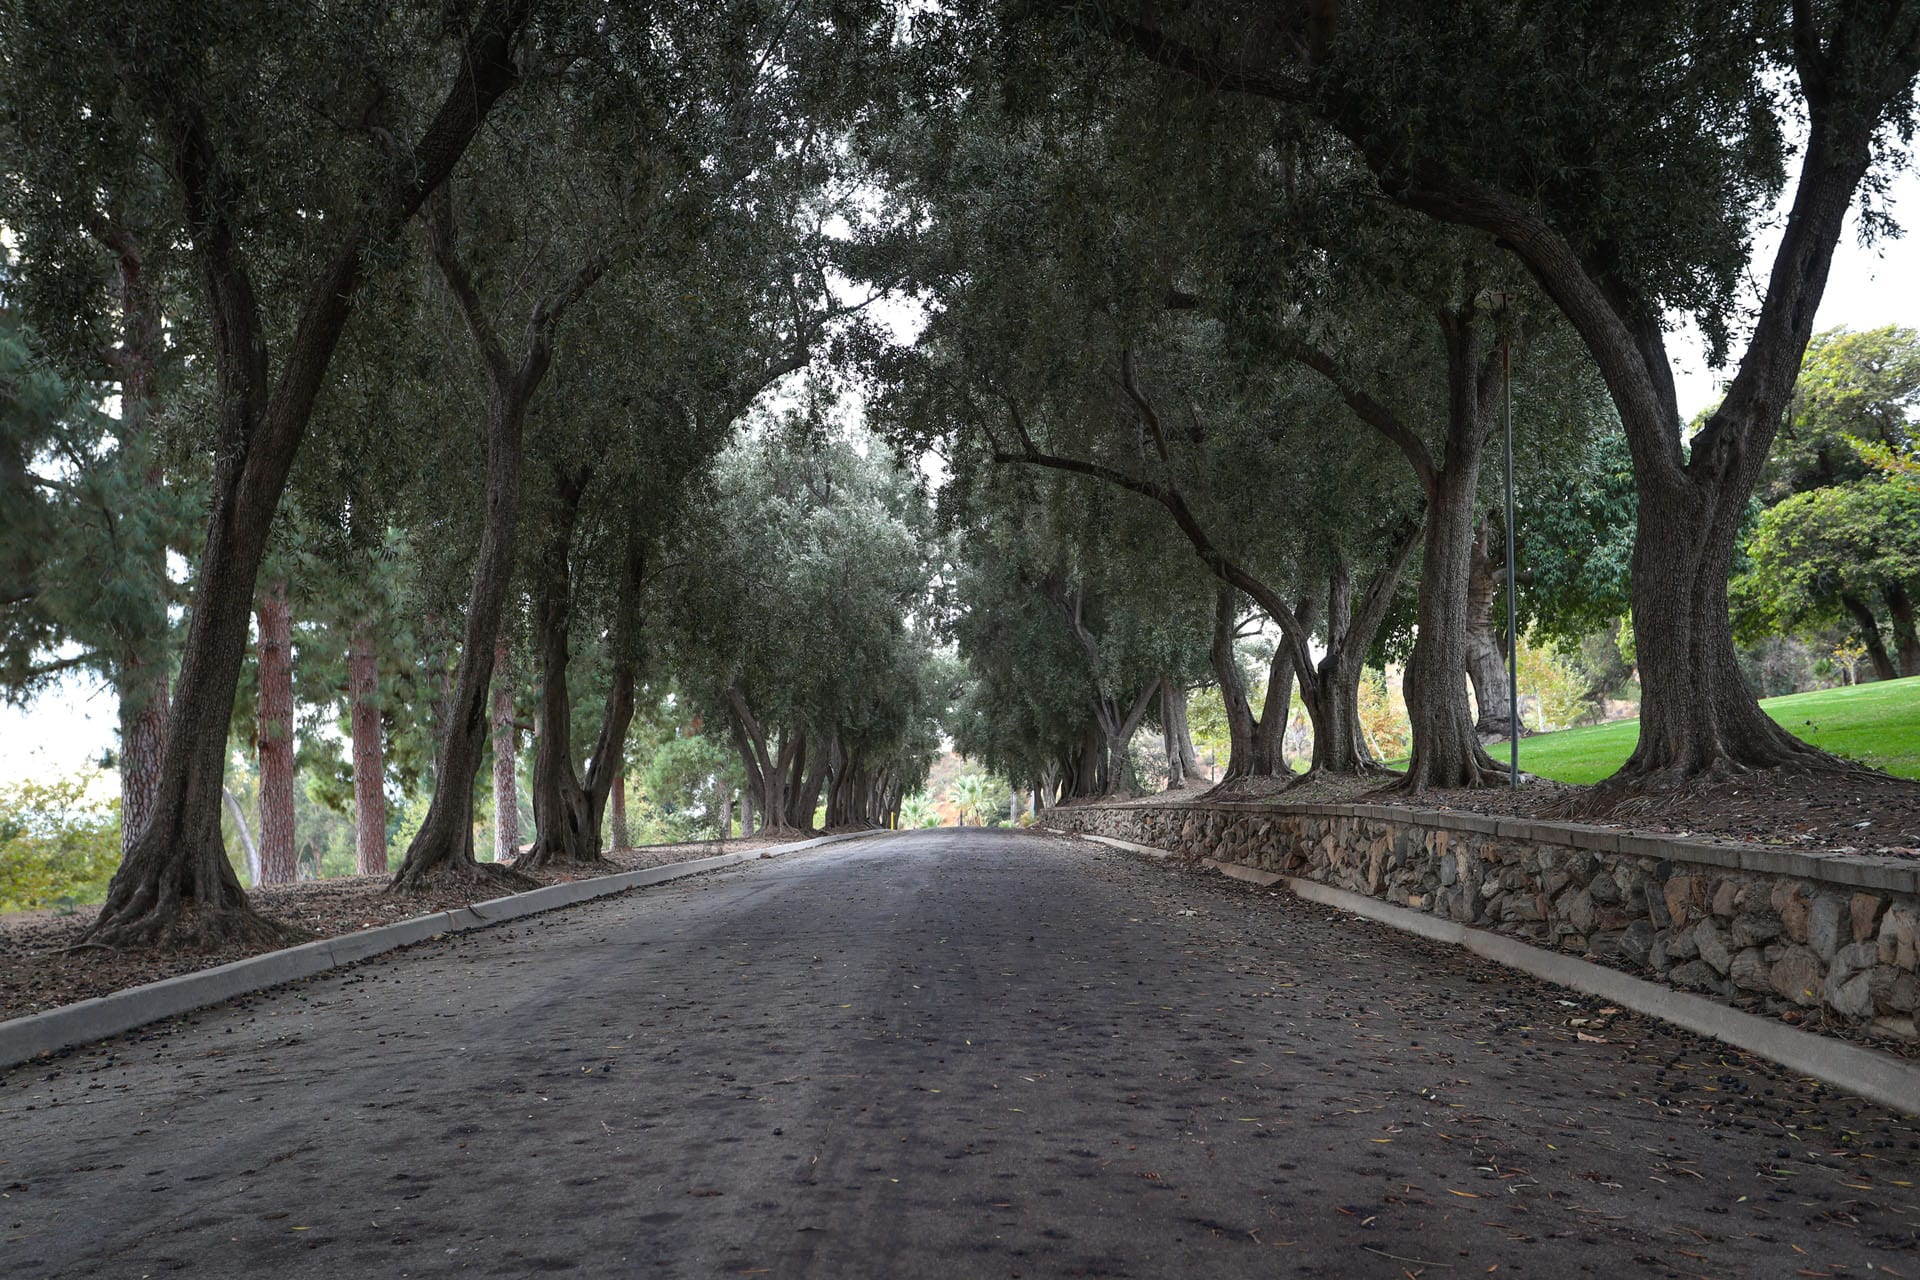 Paved path lined with trees